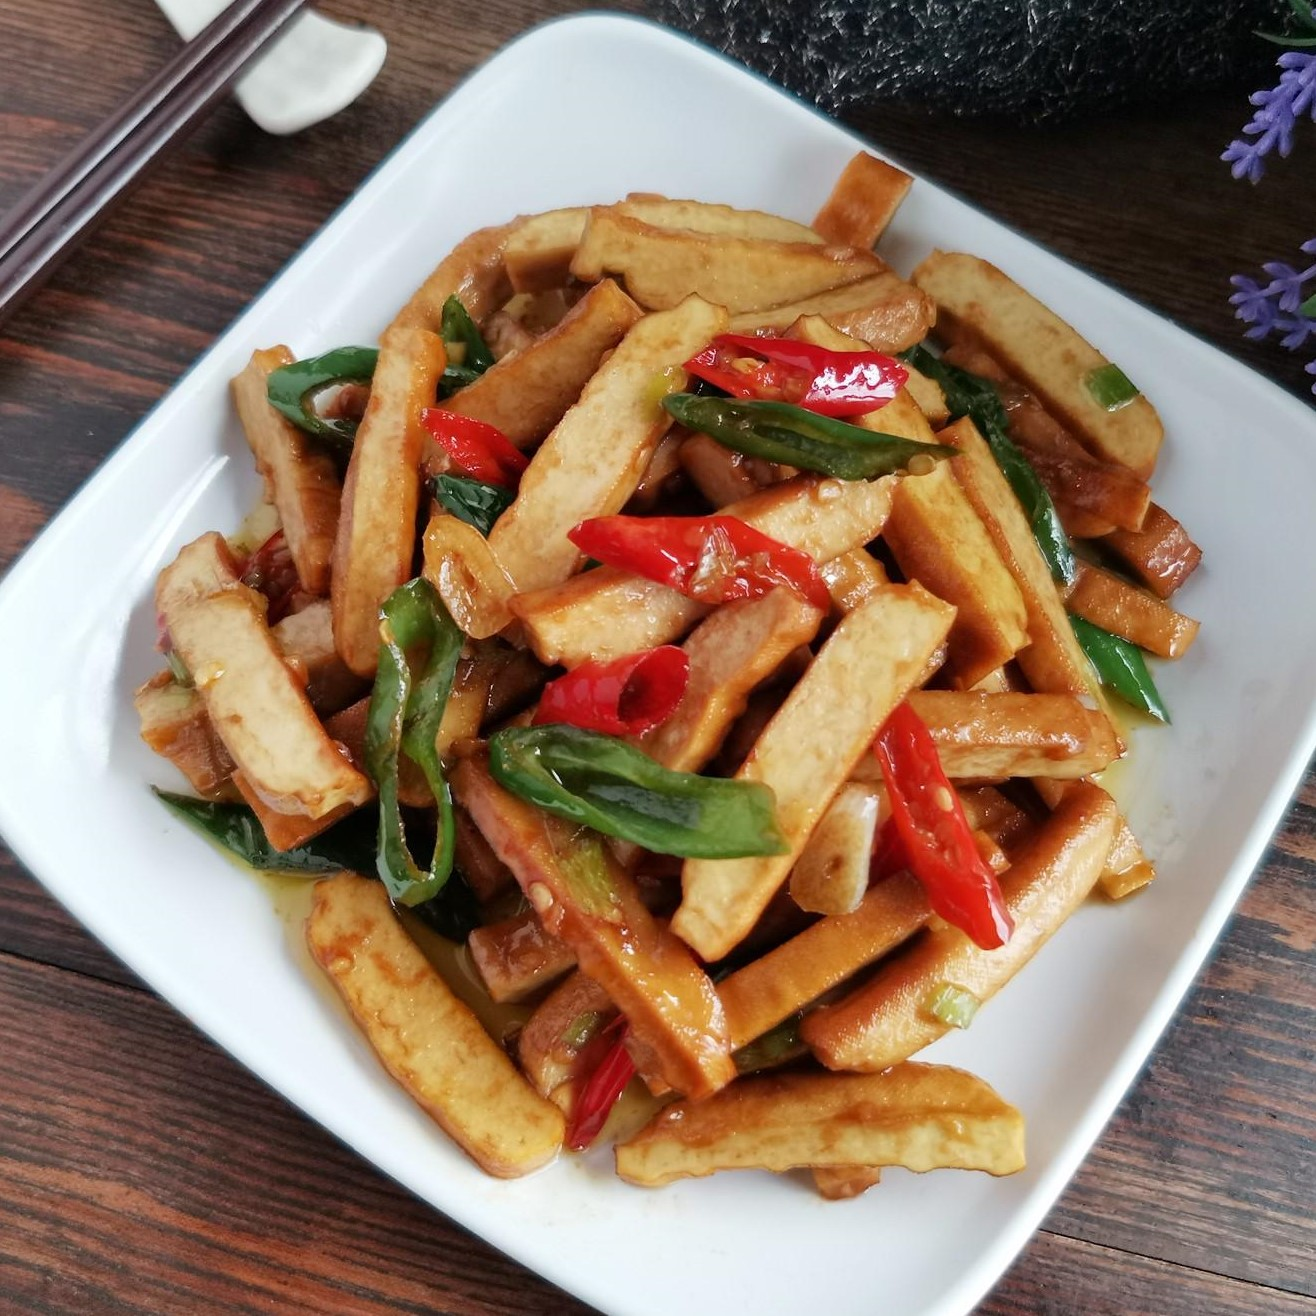 Stir-fried smoked bean curd with hot pepper recipe